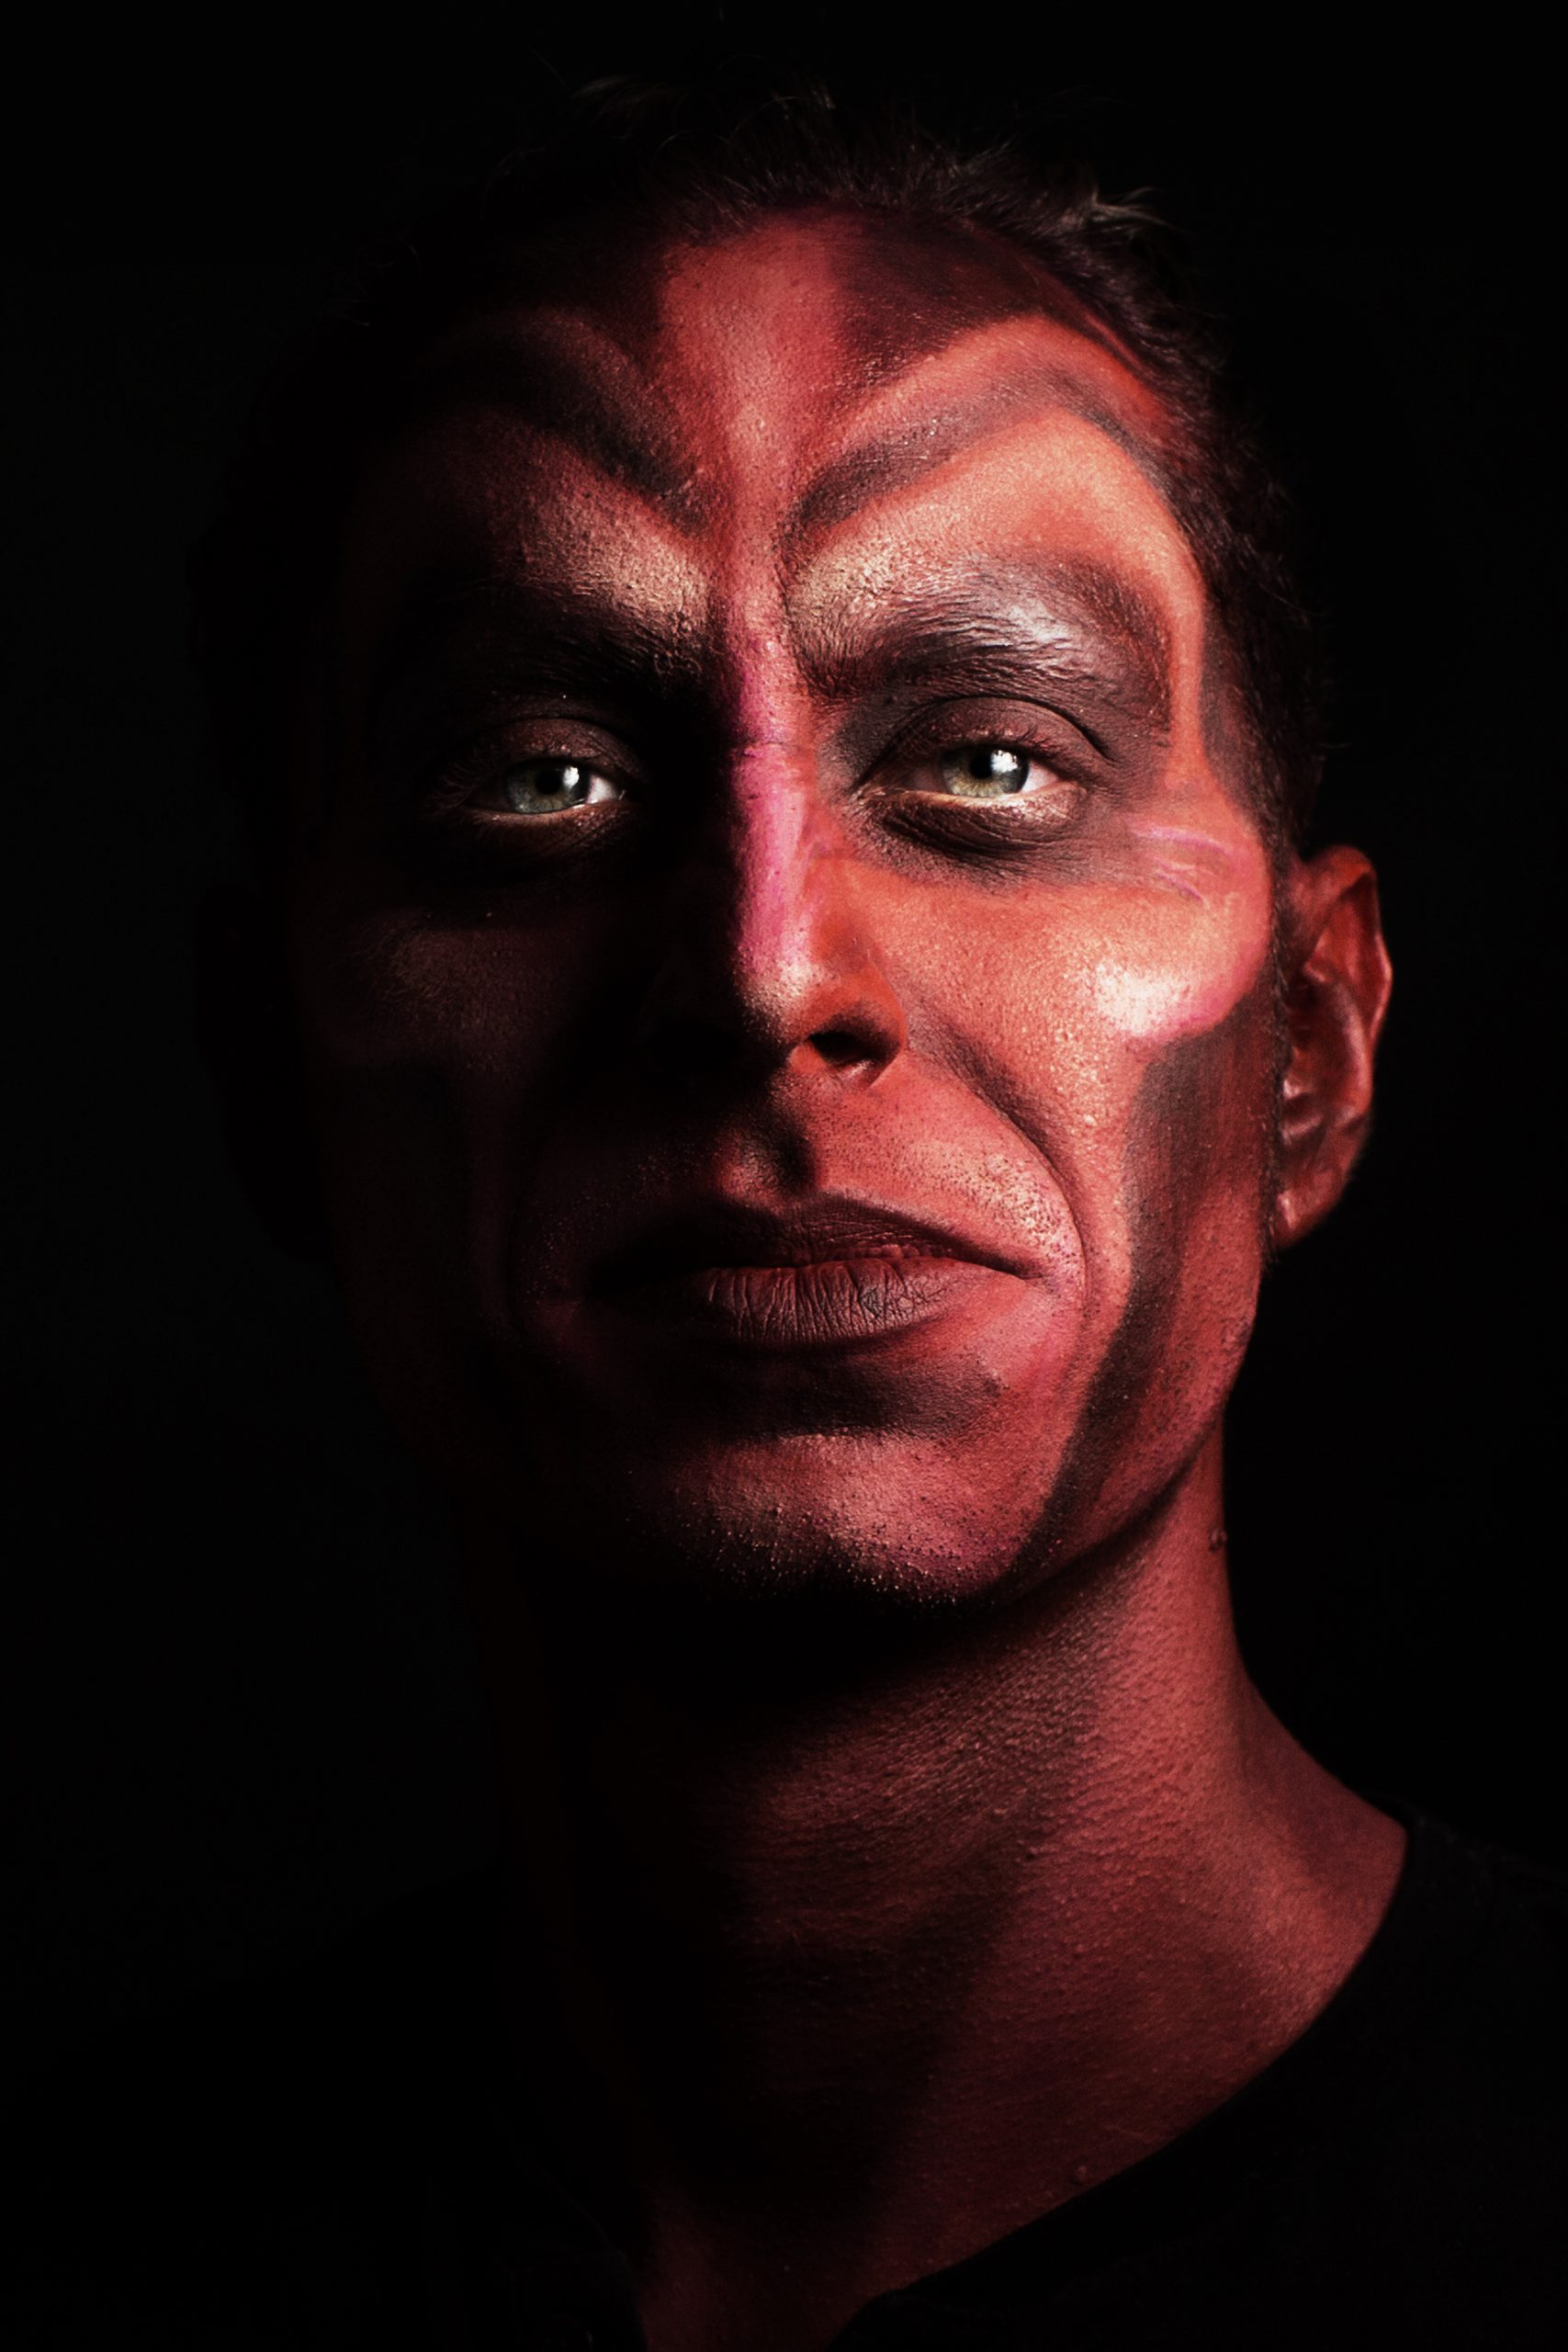 Devil facepainting, red face, theatrical professional makeup